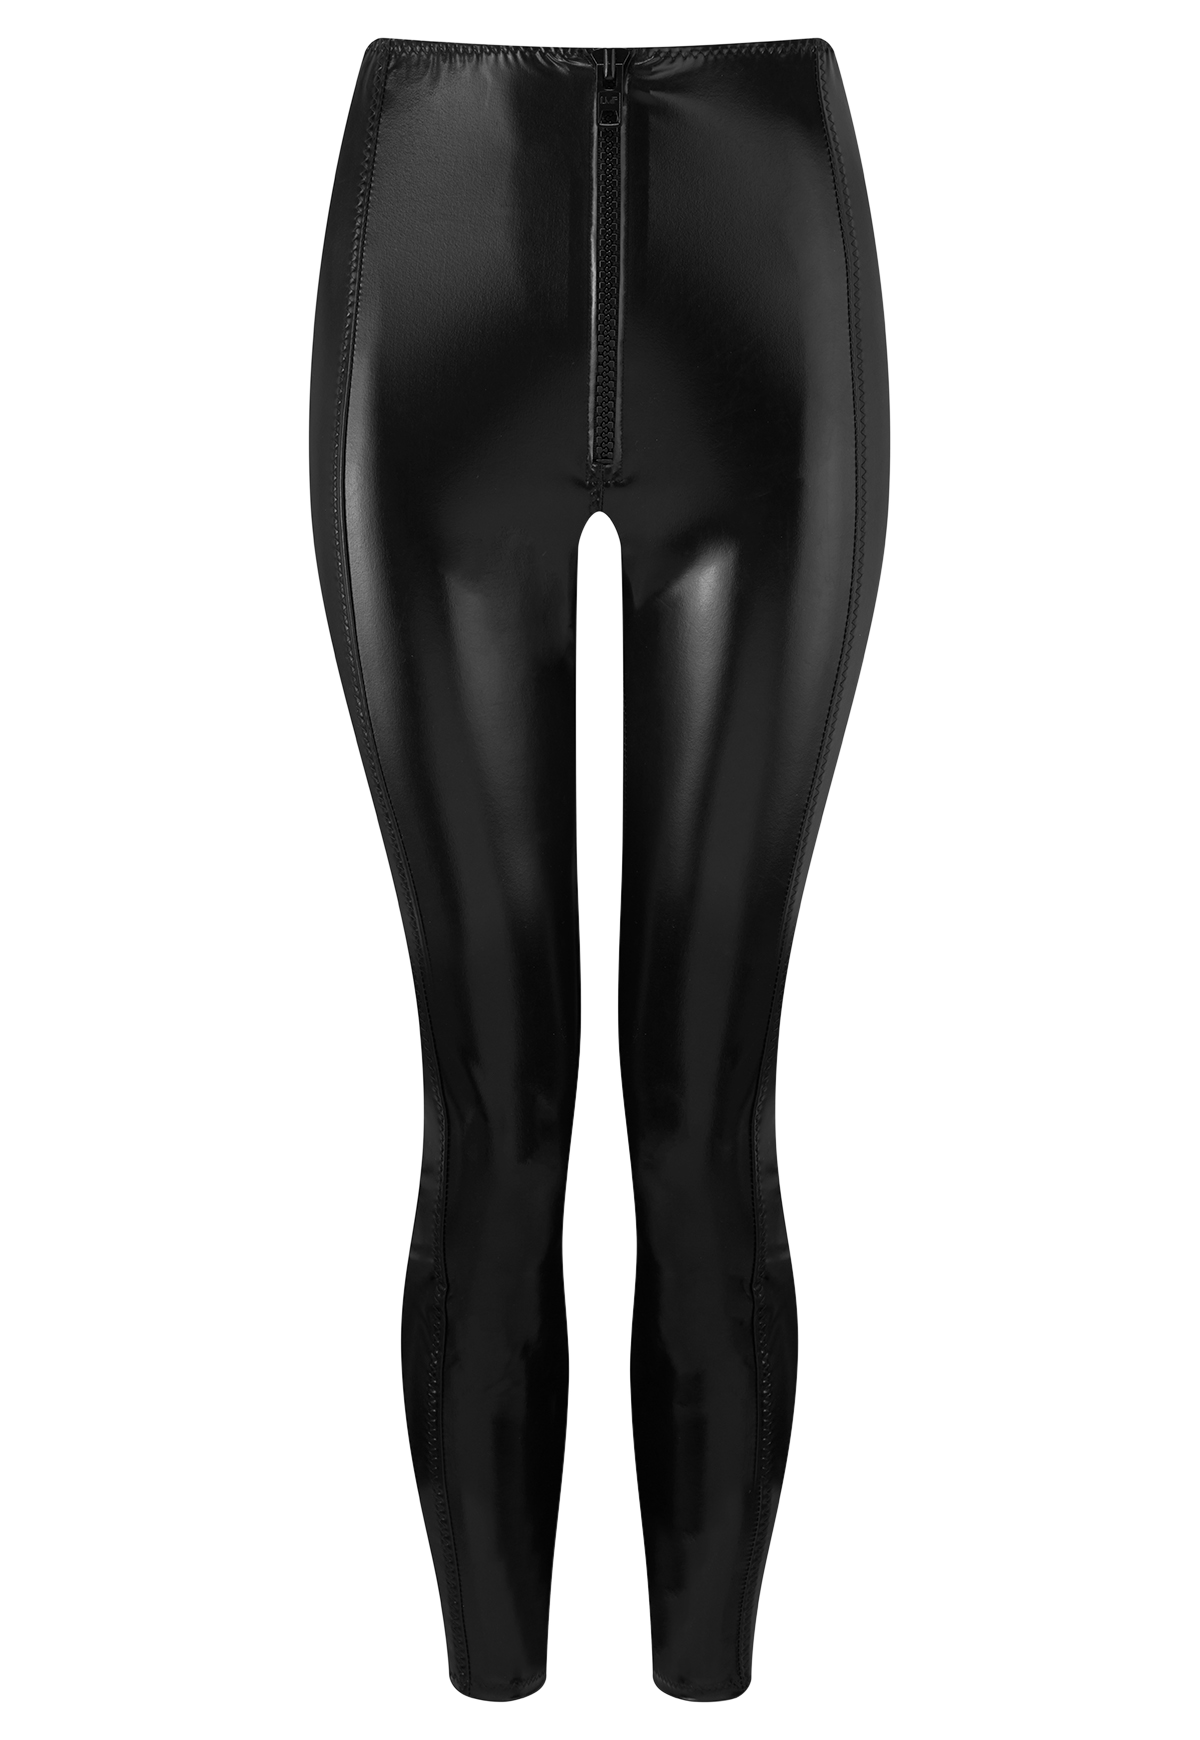 HANNAH BLACK PVC CROP LEGGING